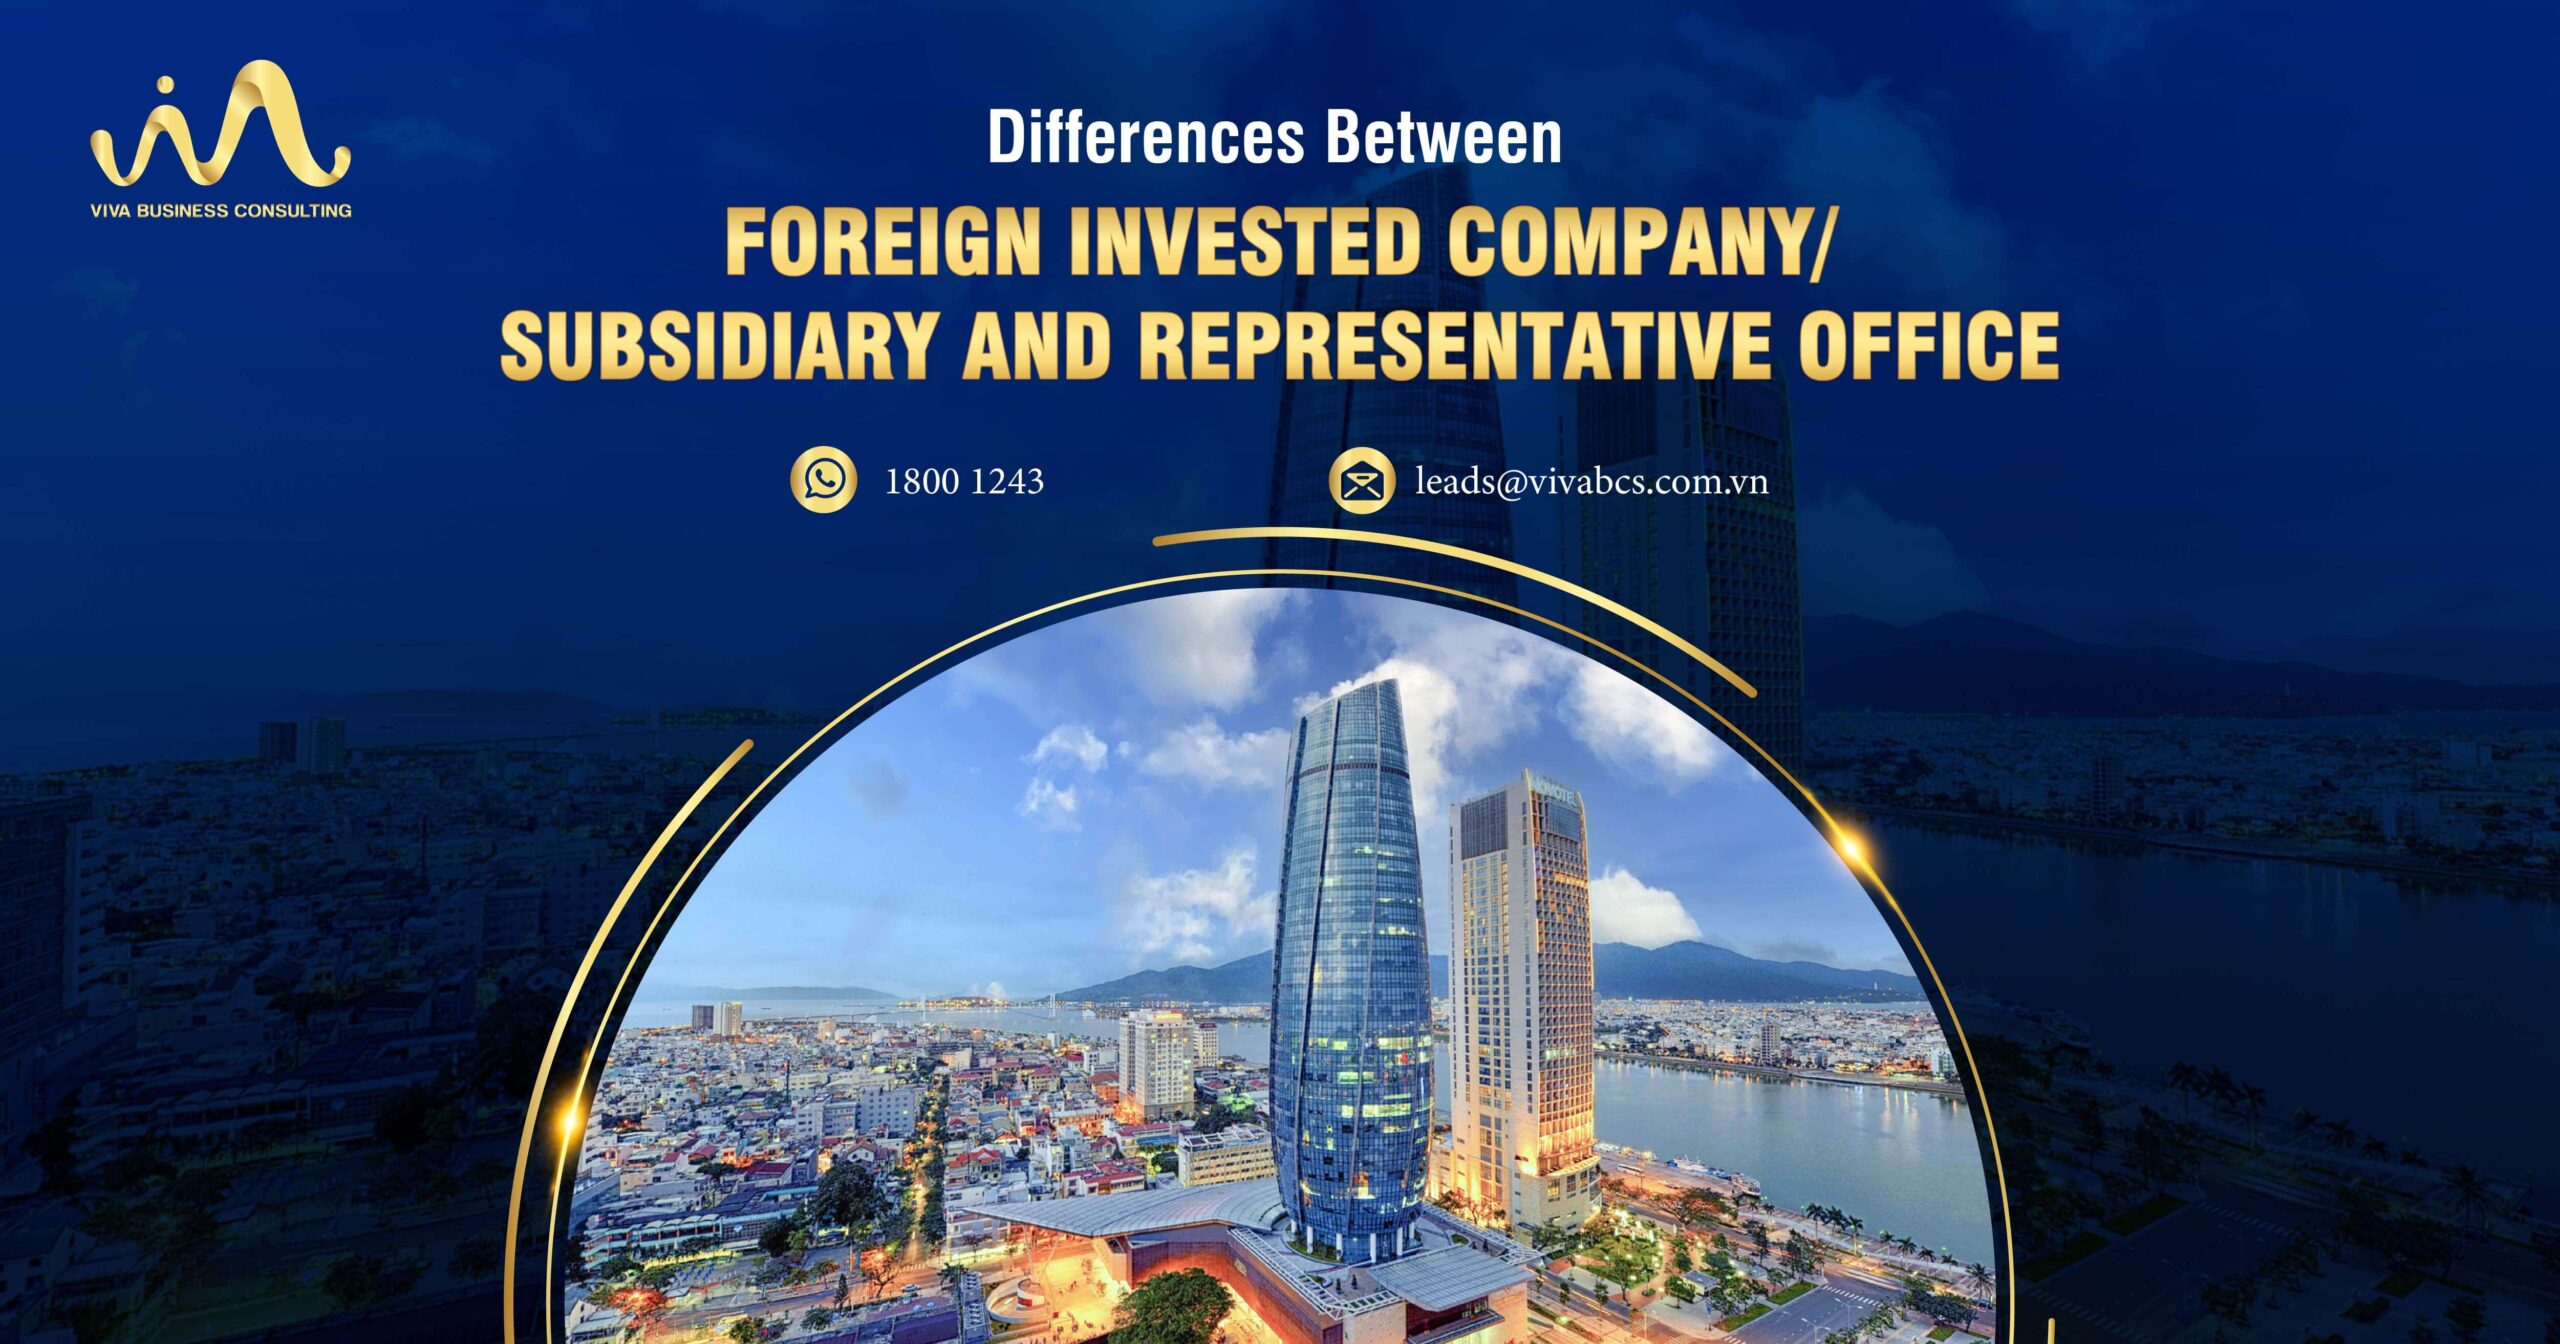 foreign invested company & representative office in Vietnam